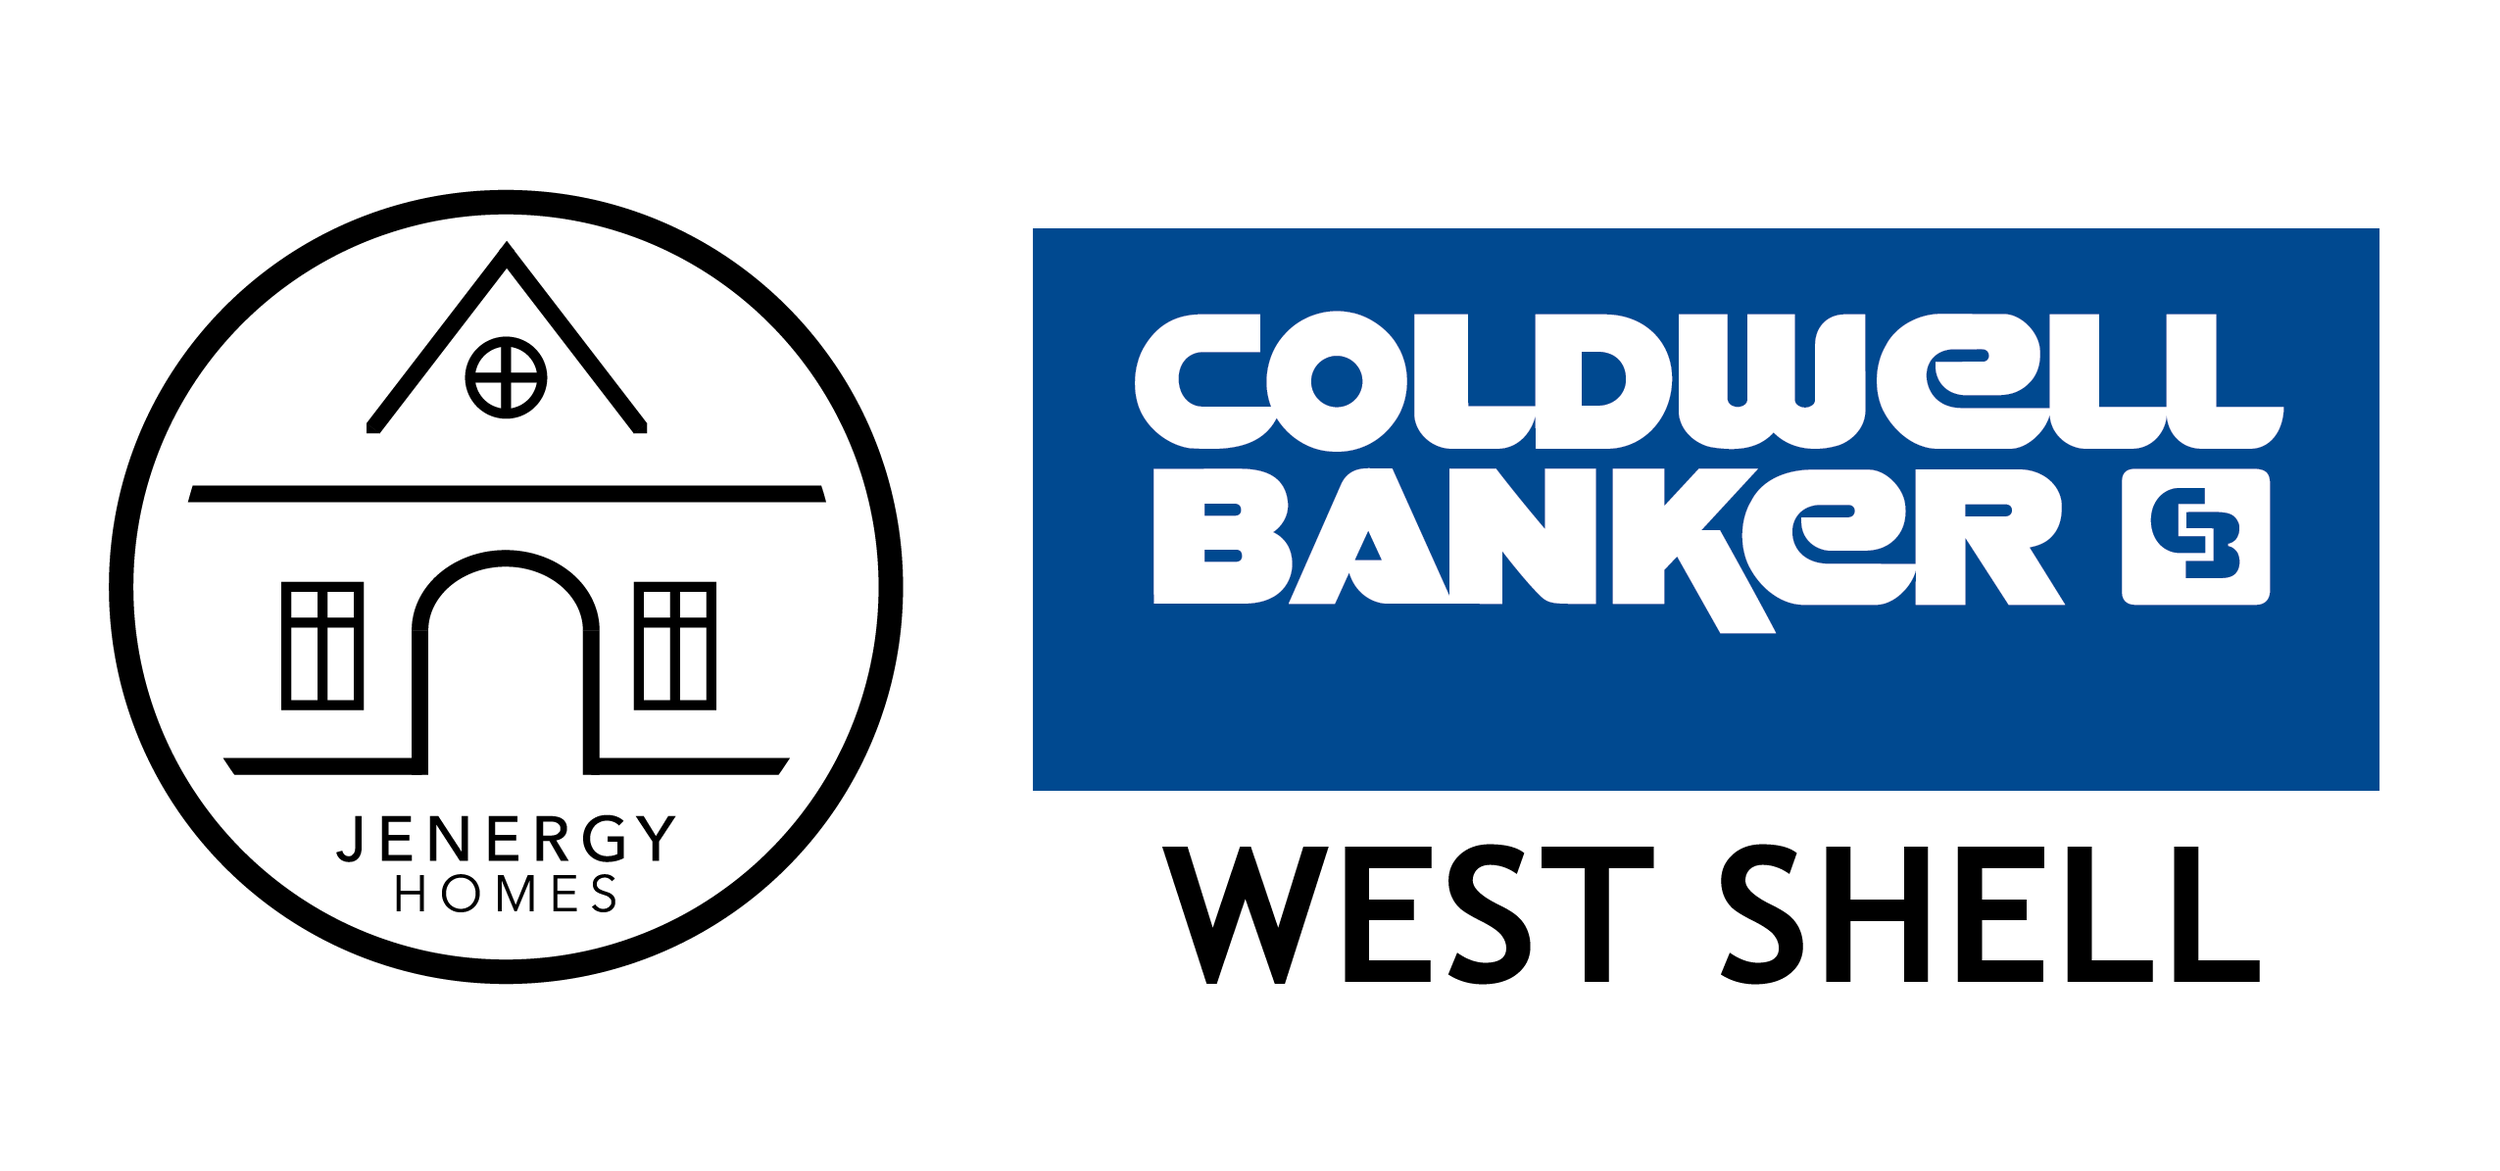 ©2018 Coldwell Banker Residential Real Estate LLC. All Rights Reserved.  Coldwell Banker West Shell | 1400 Elm ST | Cincinnati OH 45202 |